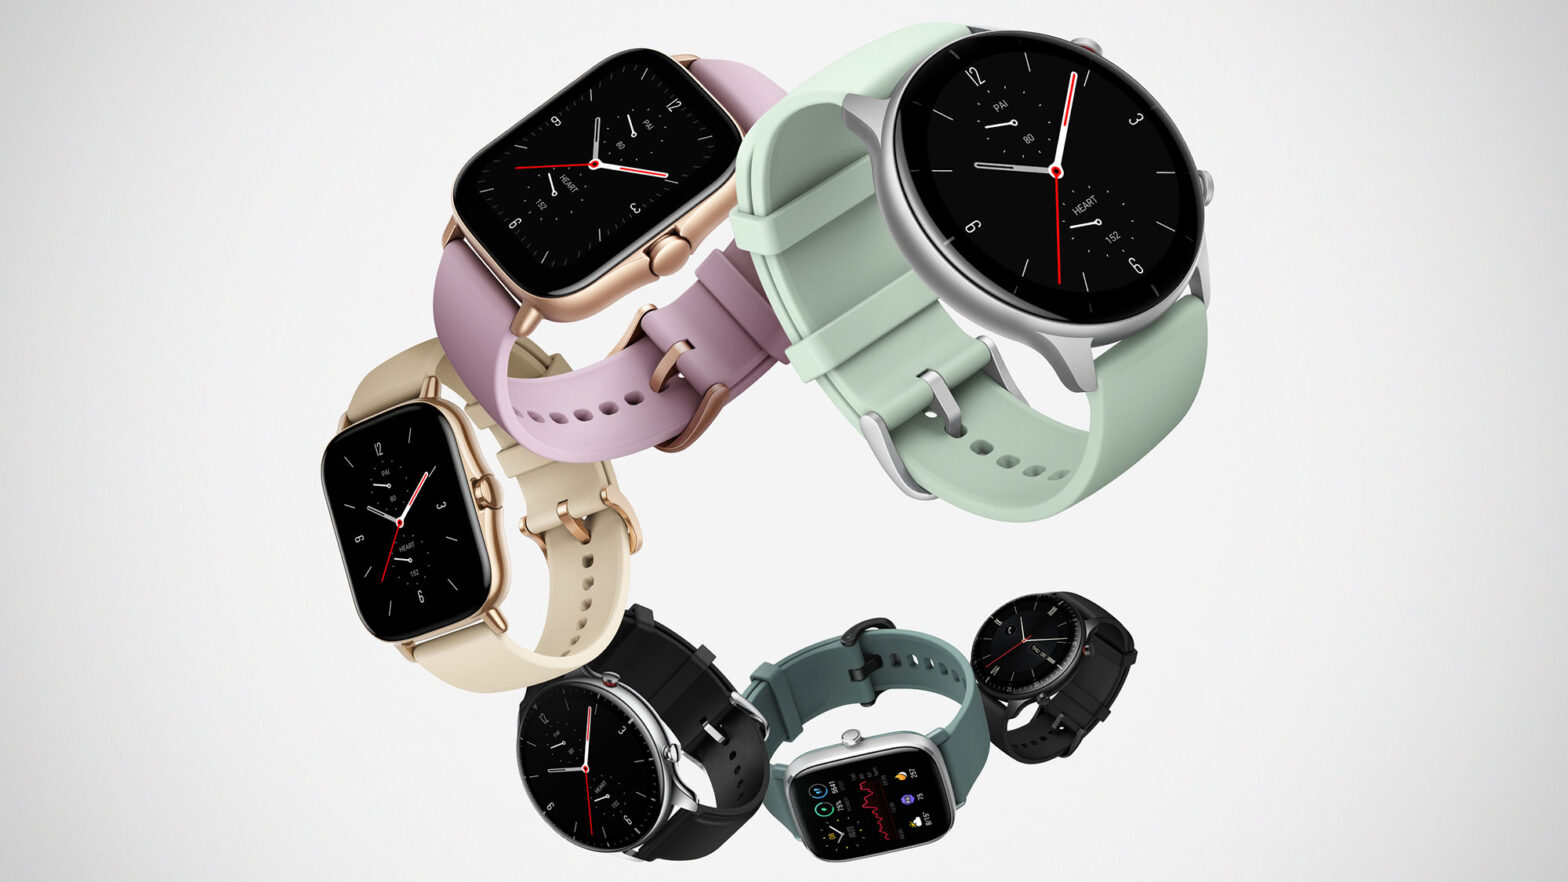 Amazfit GTR 2e and GTS 2e Smartwatches